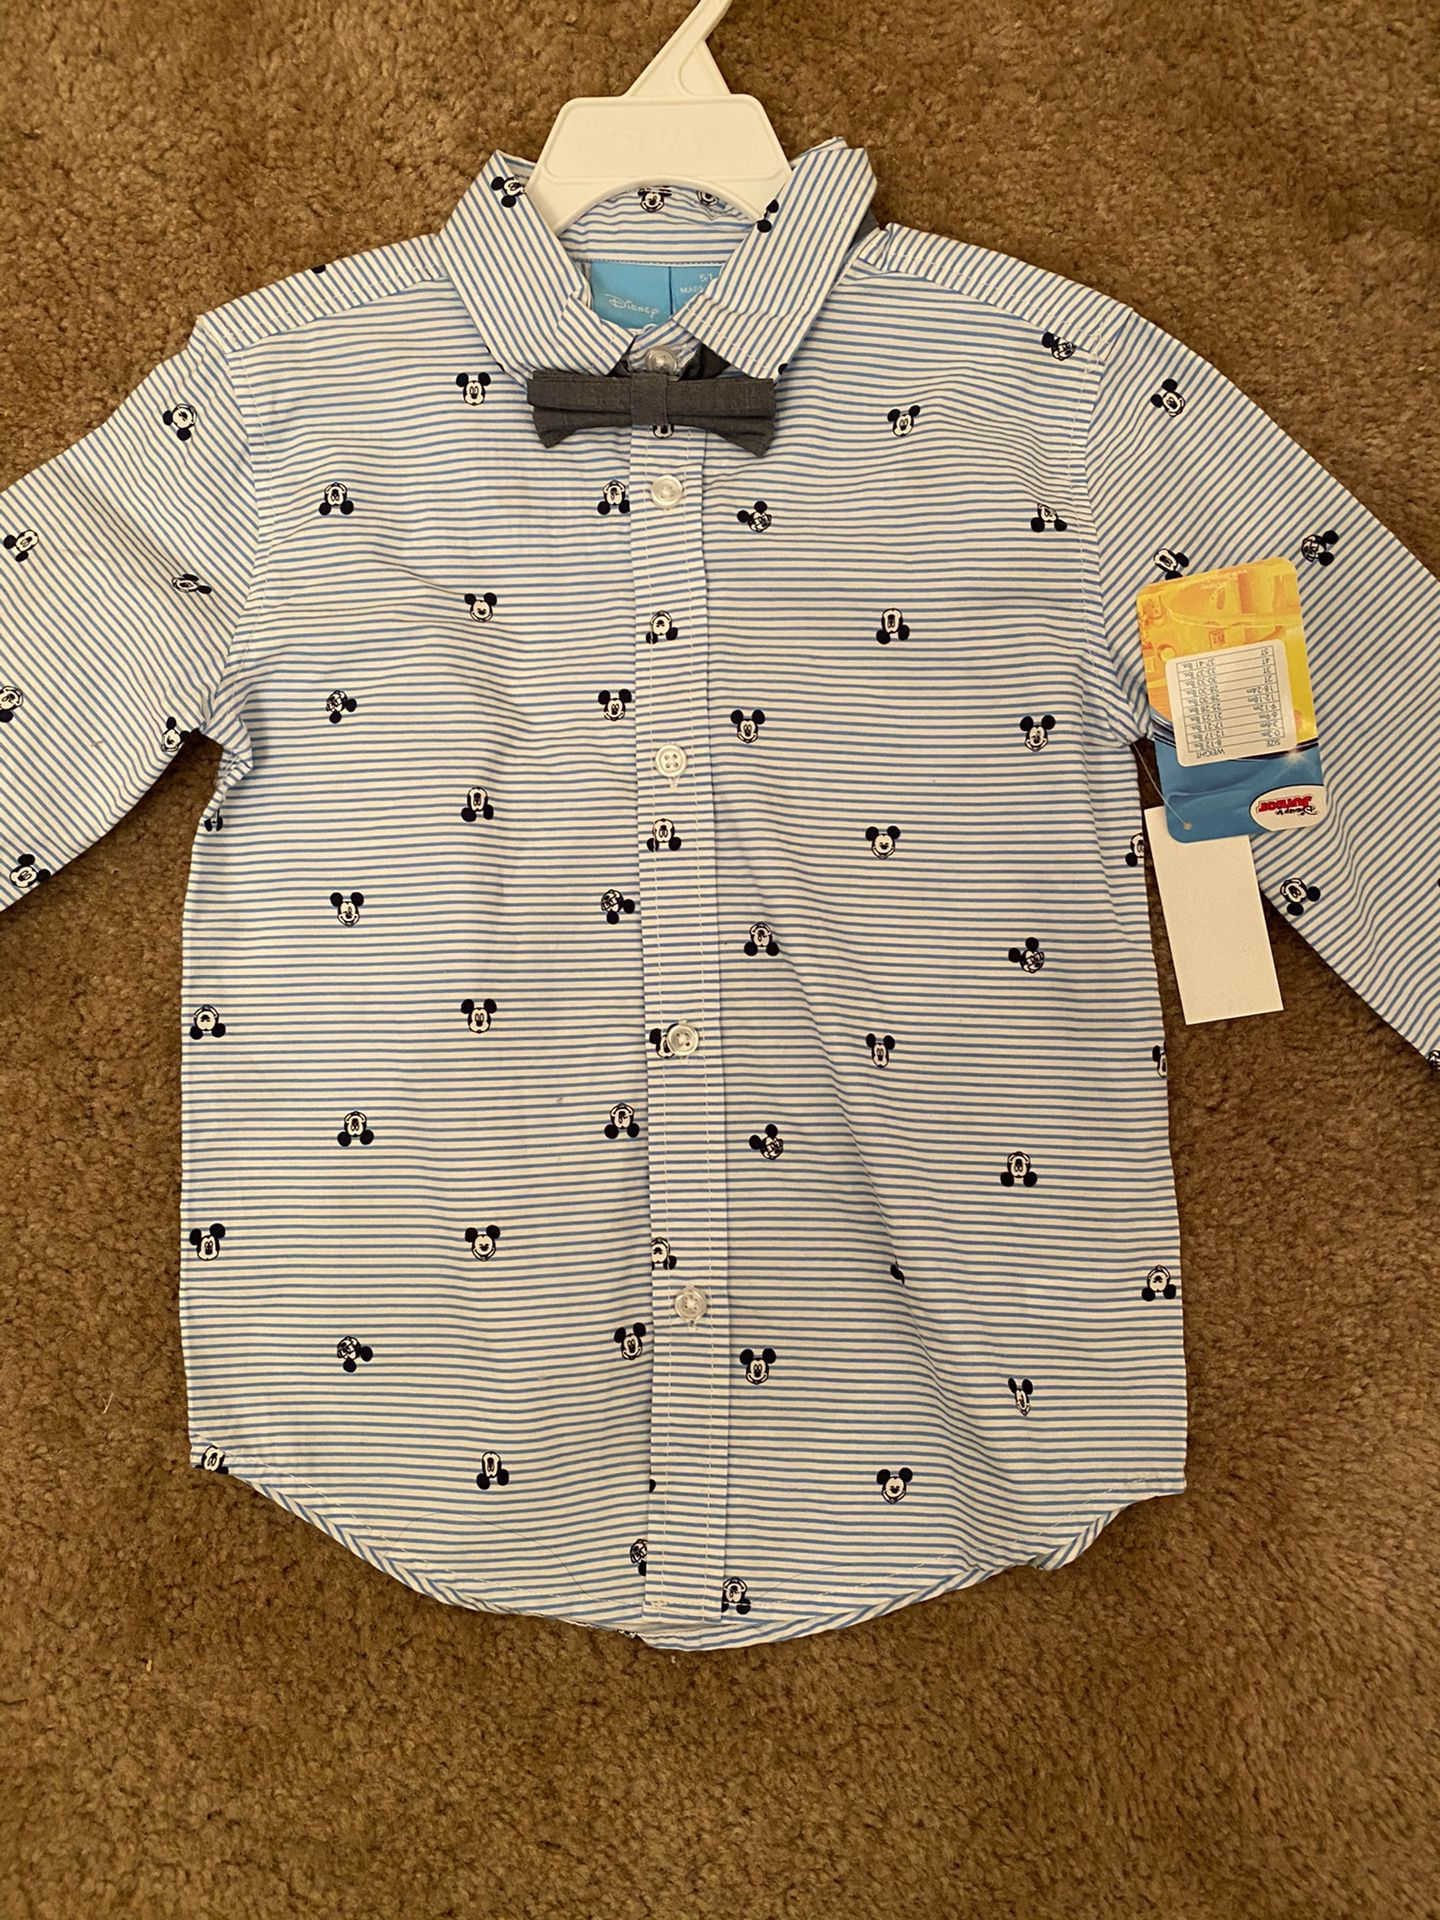 Mickey Mouse Toddler Shirt 5T New With Tags